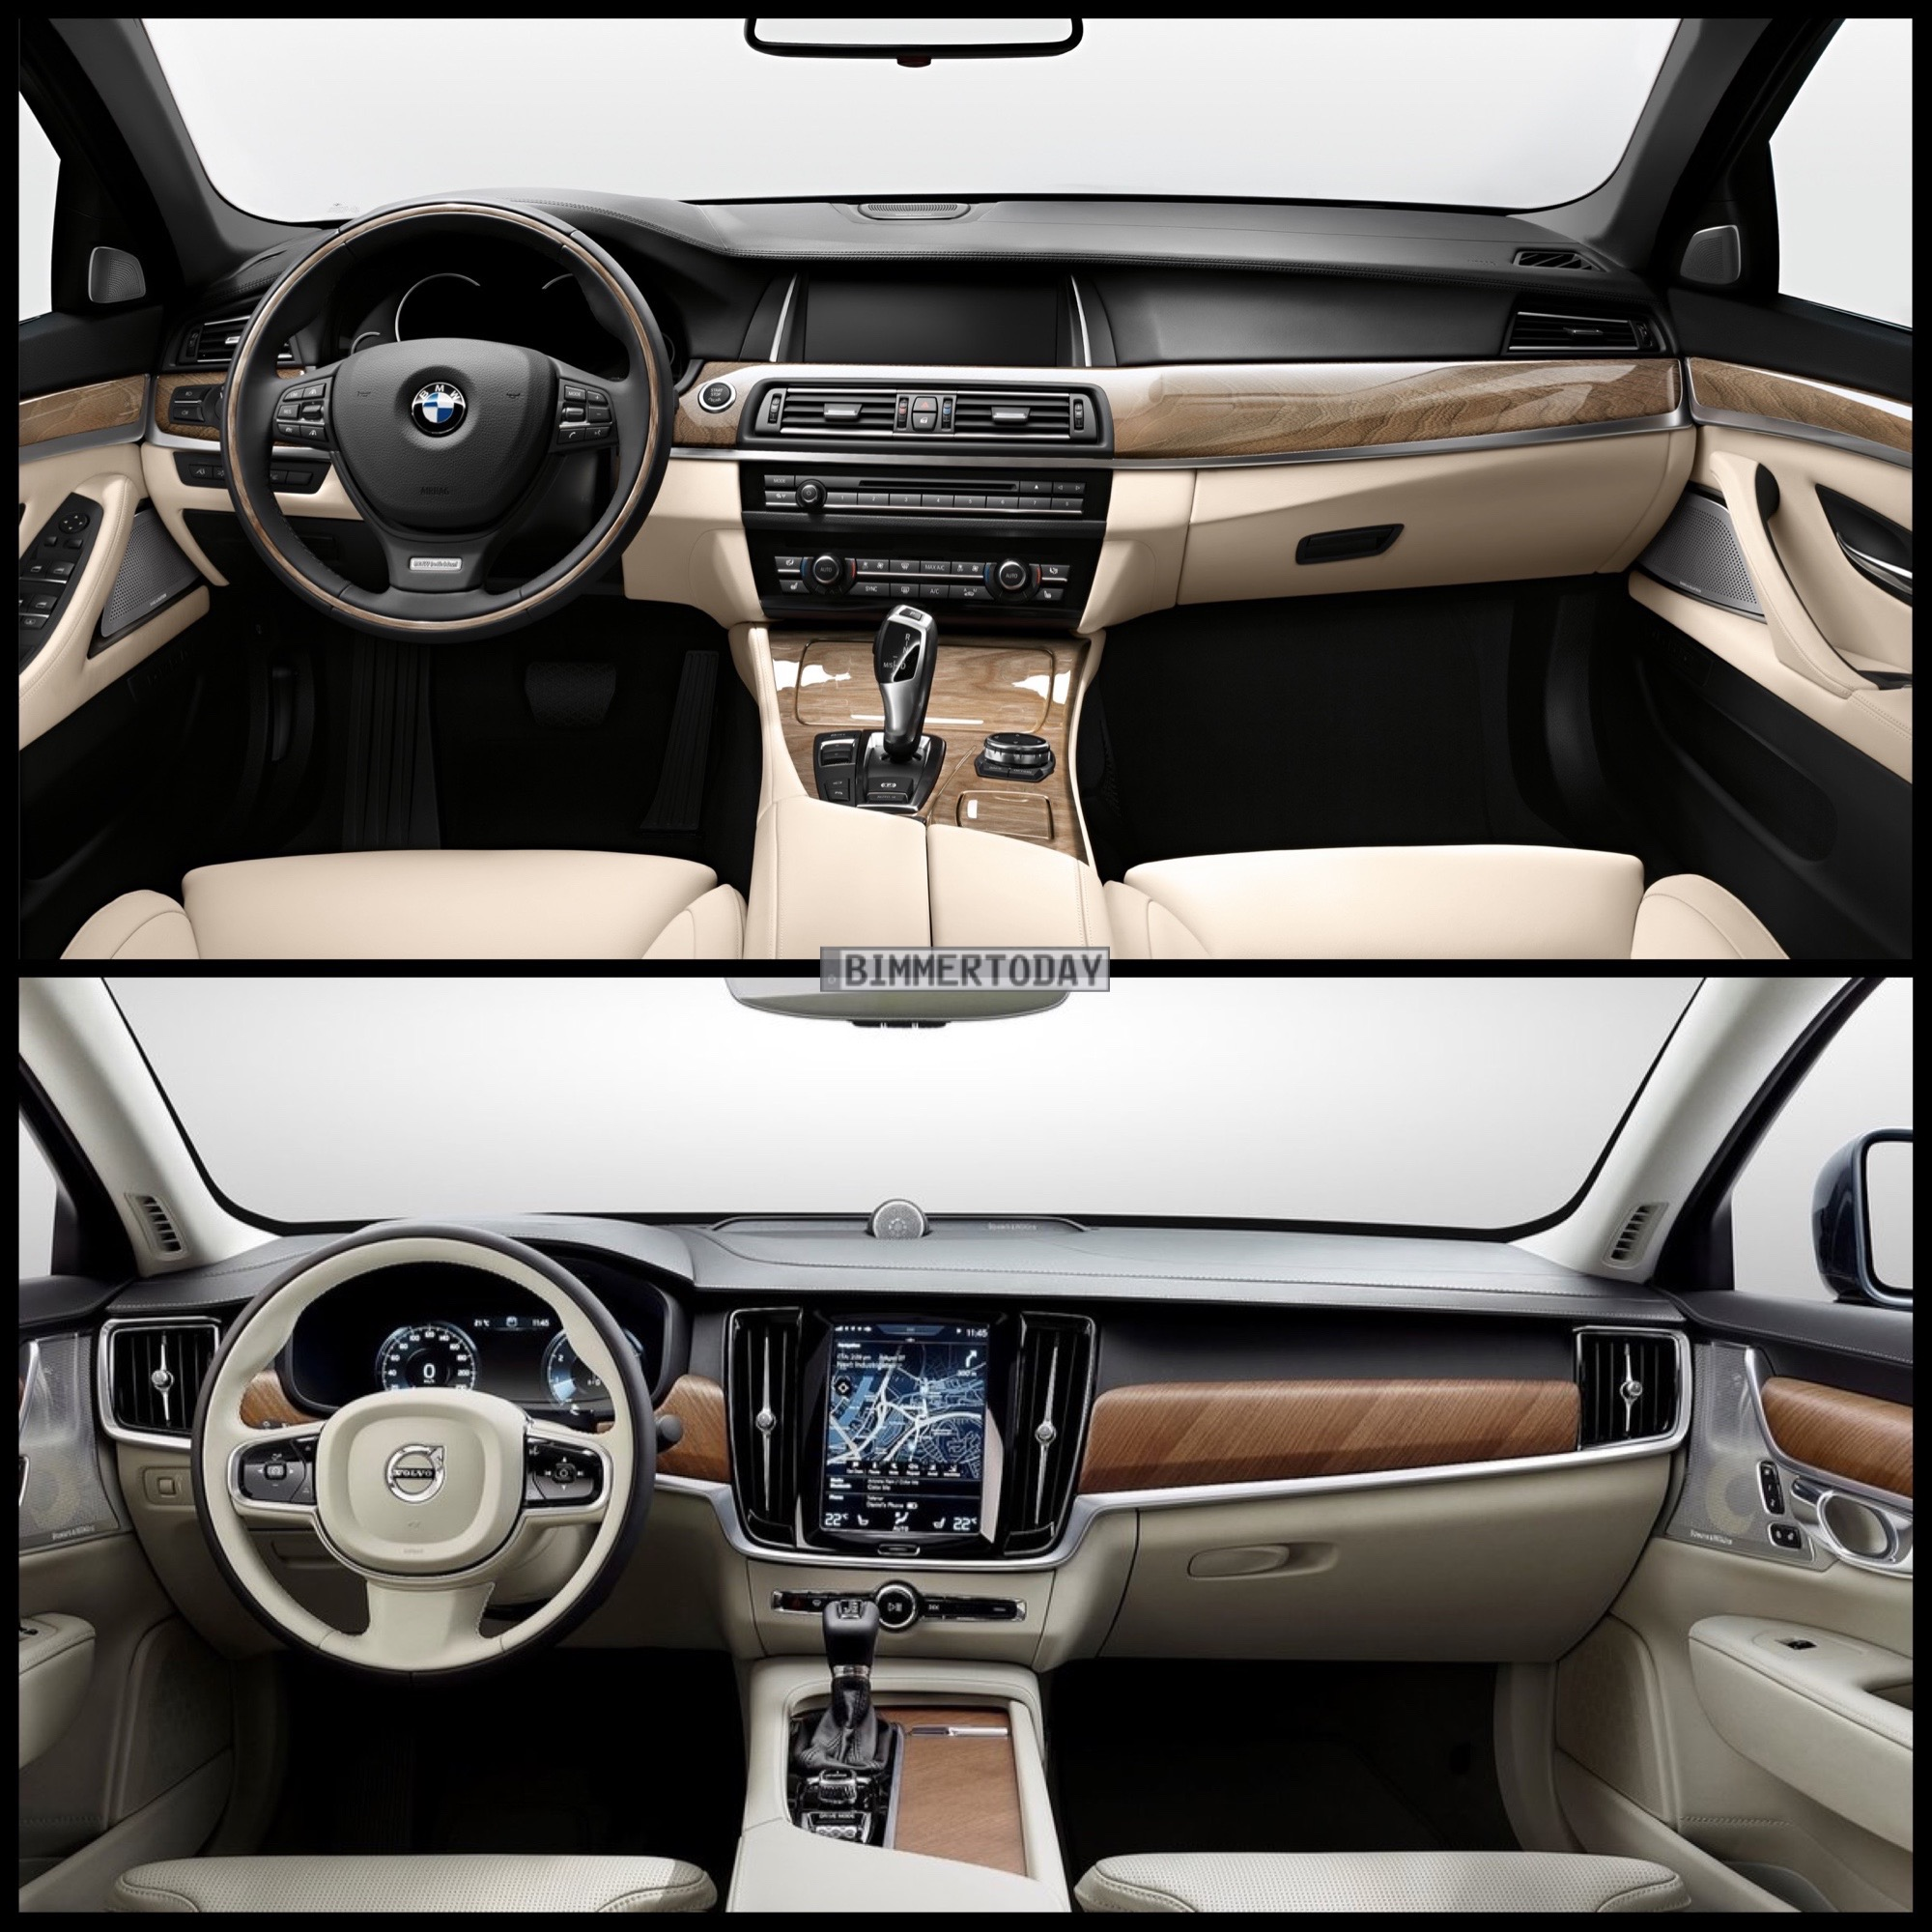 Image Comparison: 2016 Volvo S90 vs. BMW F10 5 Series